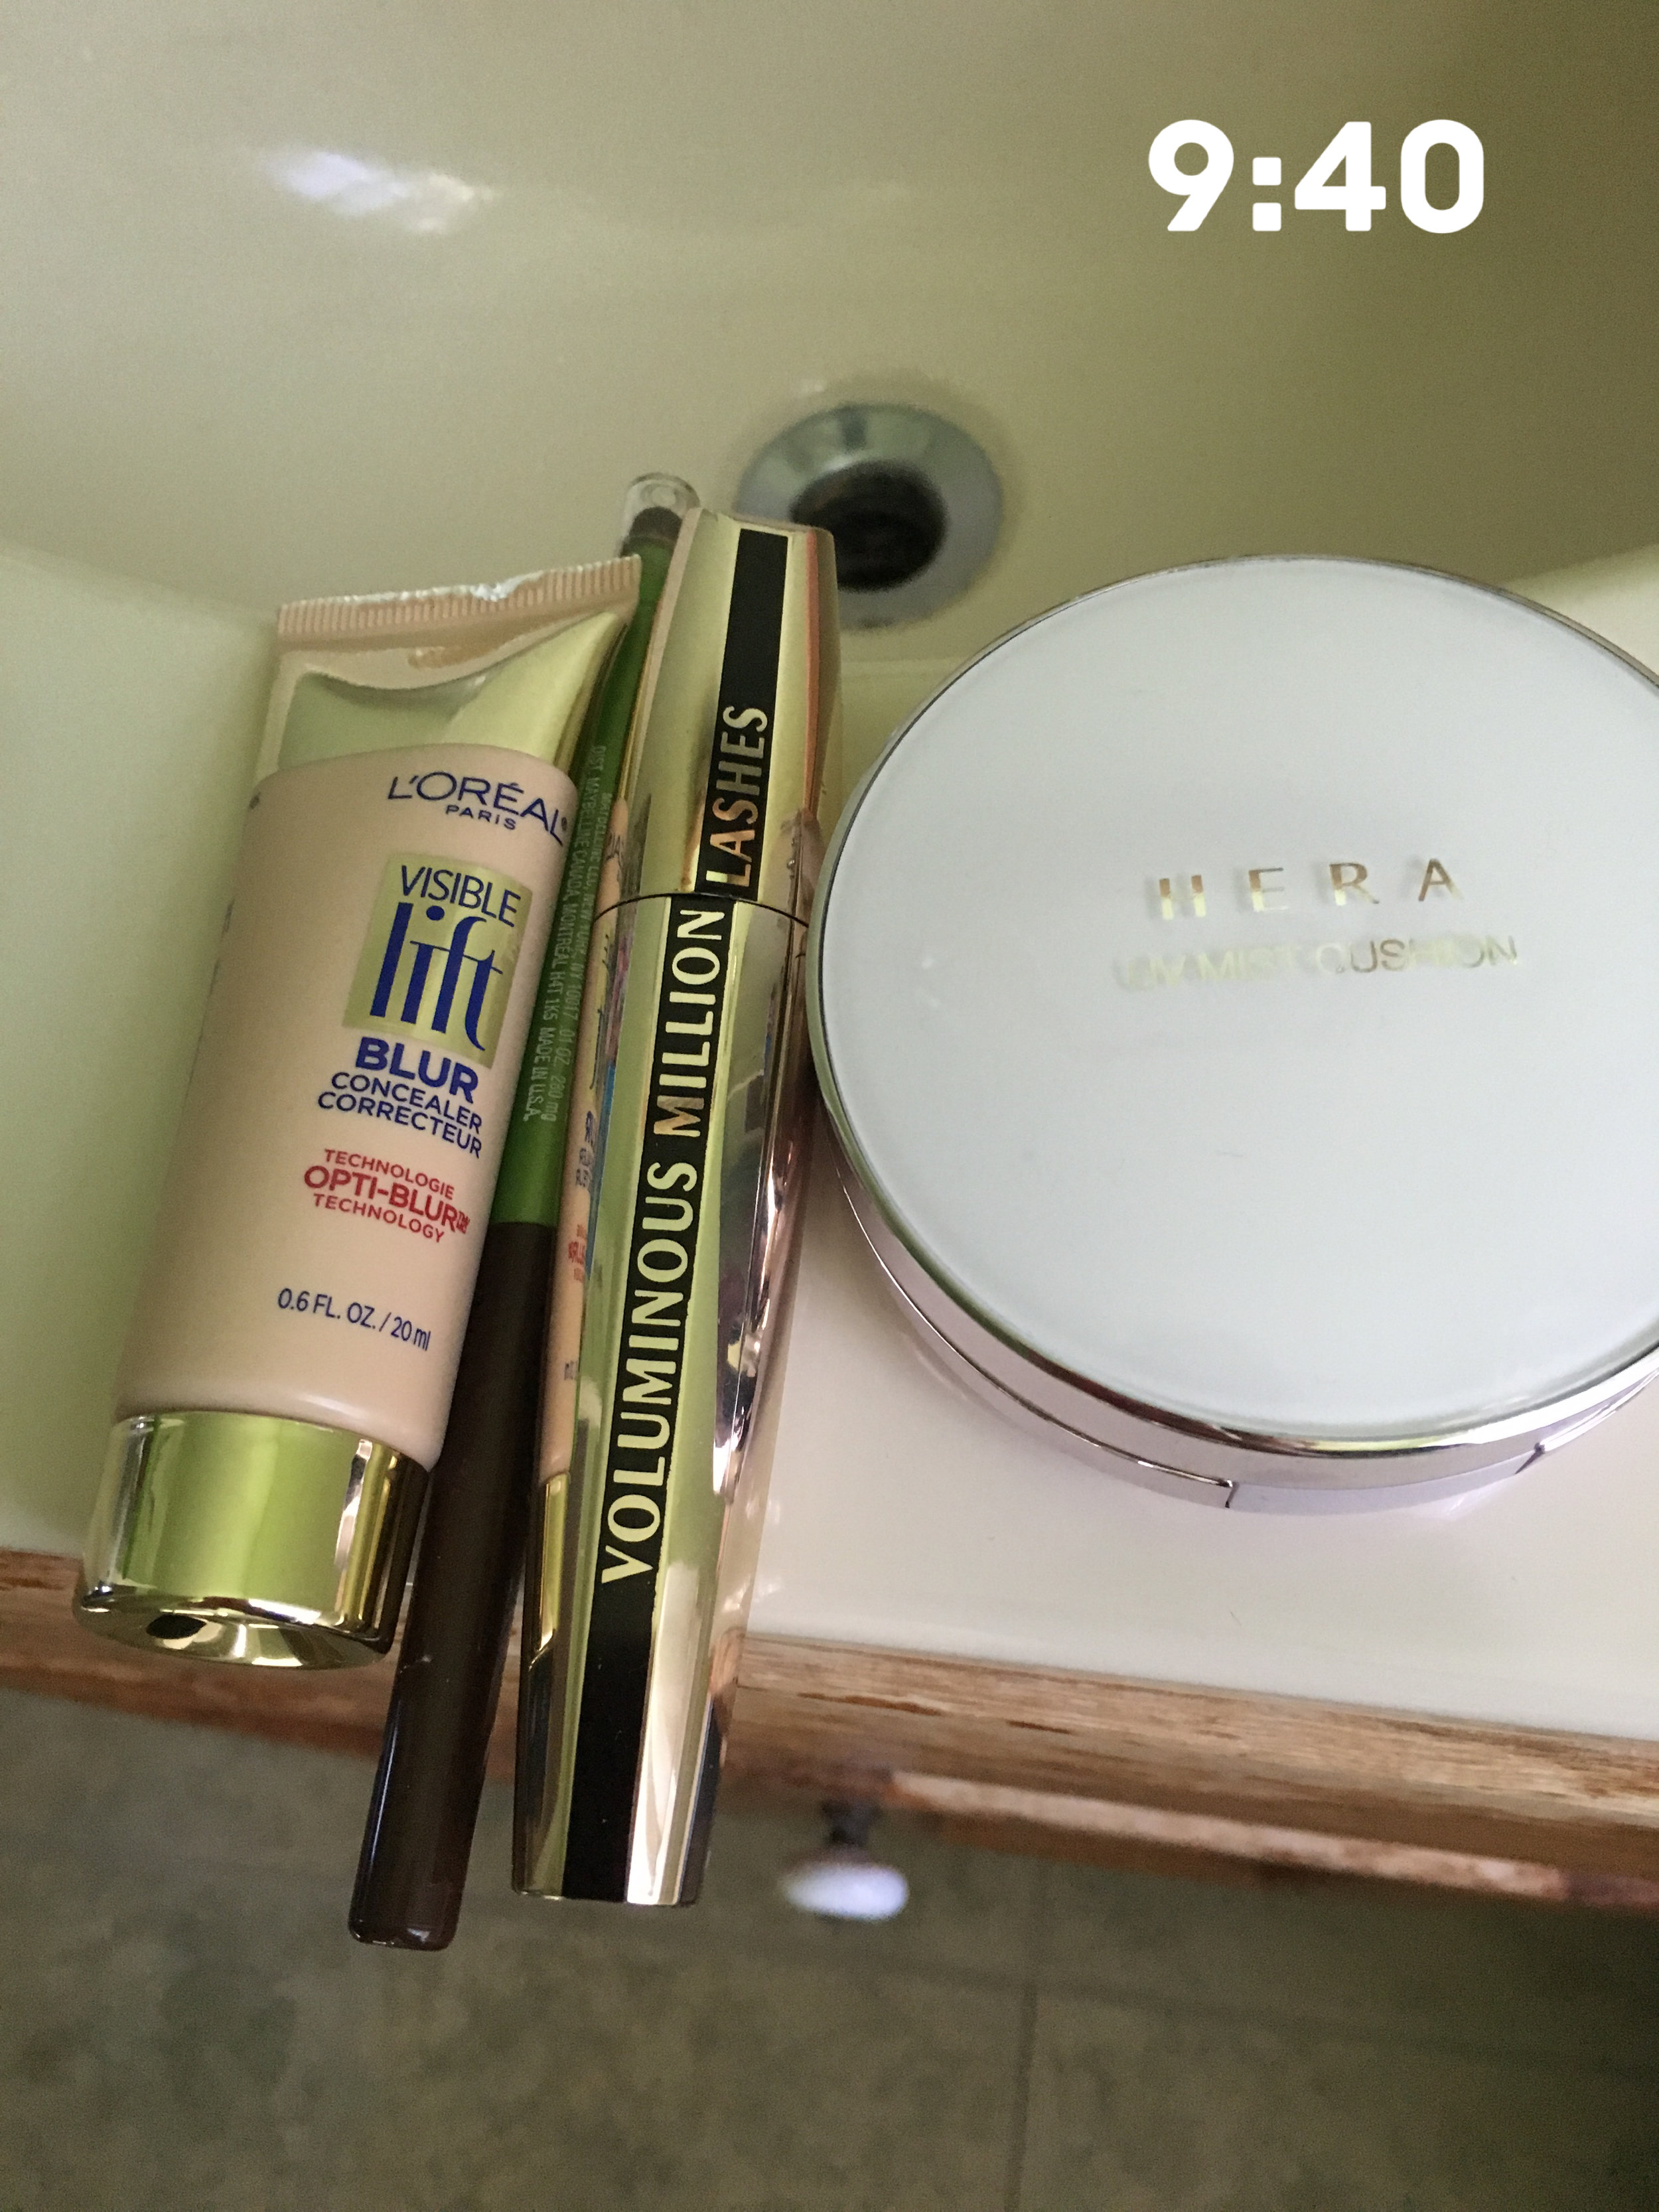 All drugstore products, except for the Hera cushion compact (LOVE), which is from  Memebox .